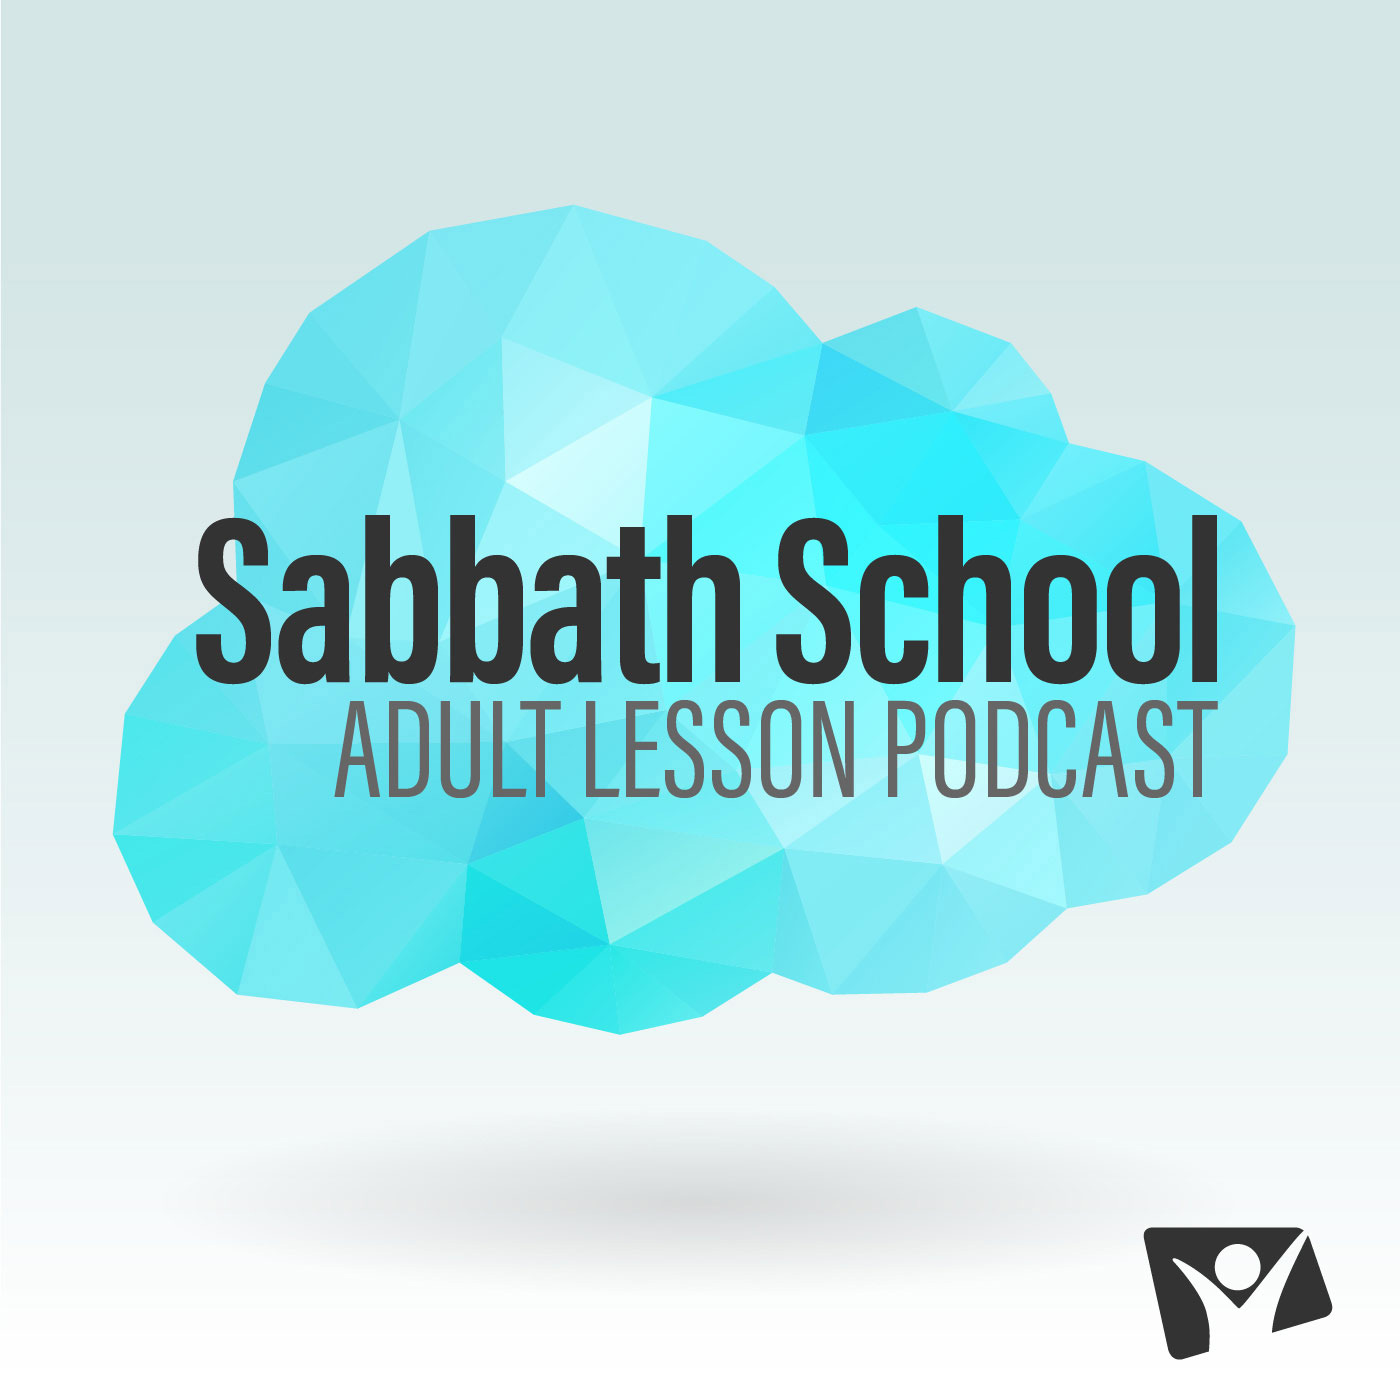 Sabbath School Podcast